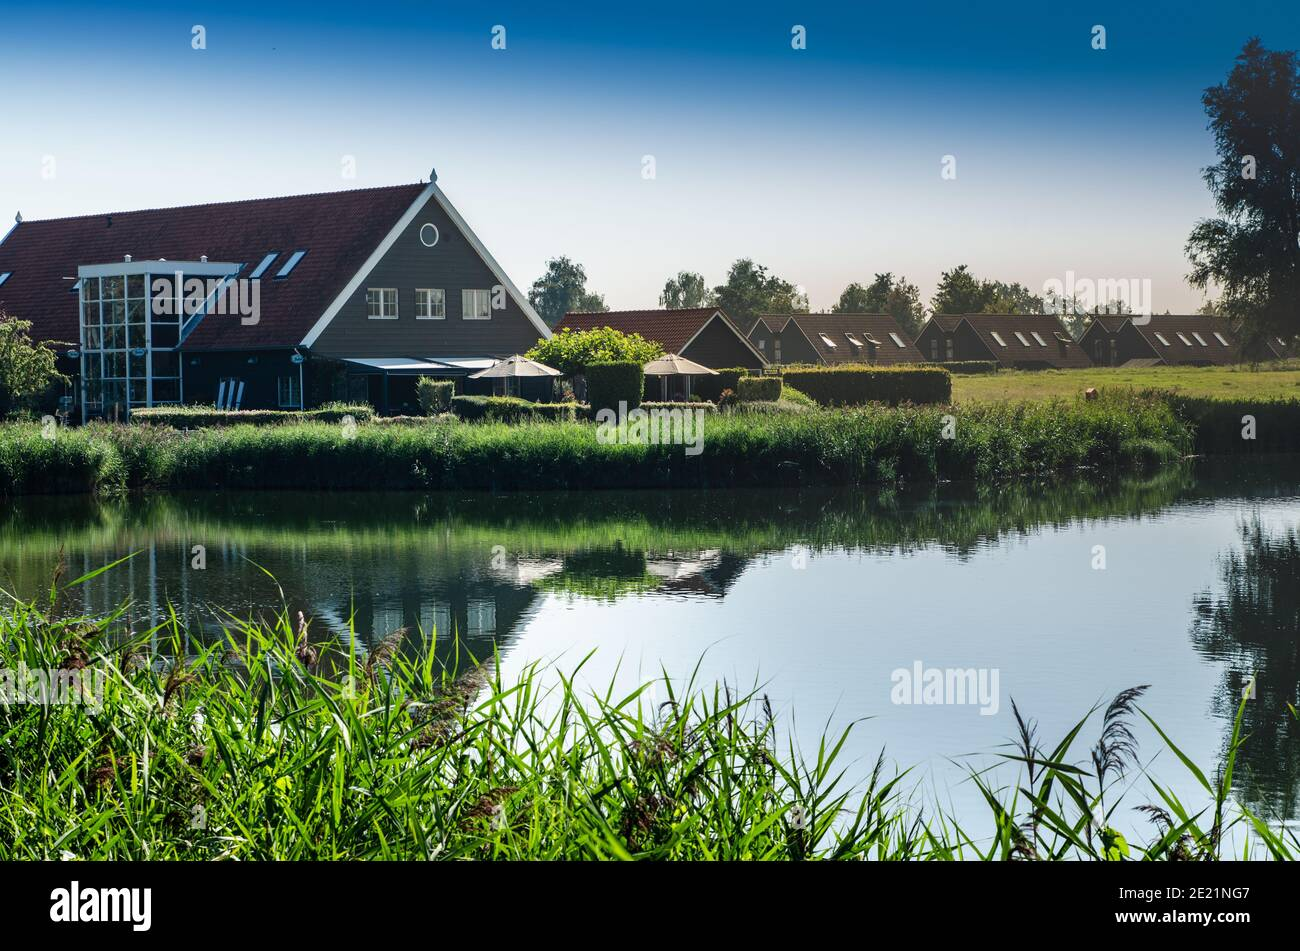 Netherlands, Goes. Dutch countryside lake landscape: reeds along the lake shore. Groups of characteristic chalets, one on the lake shore is reflected Stock Photo